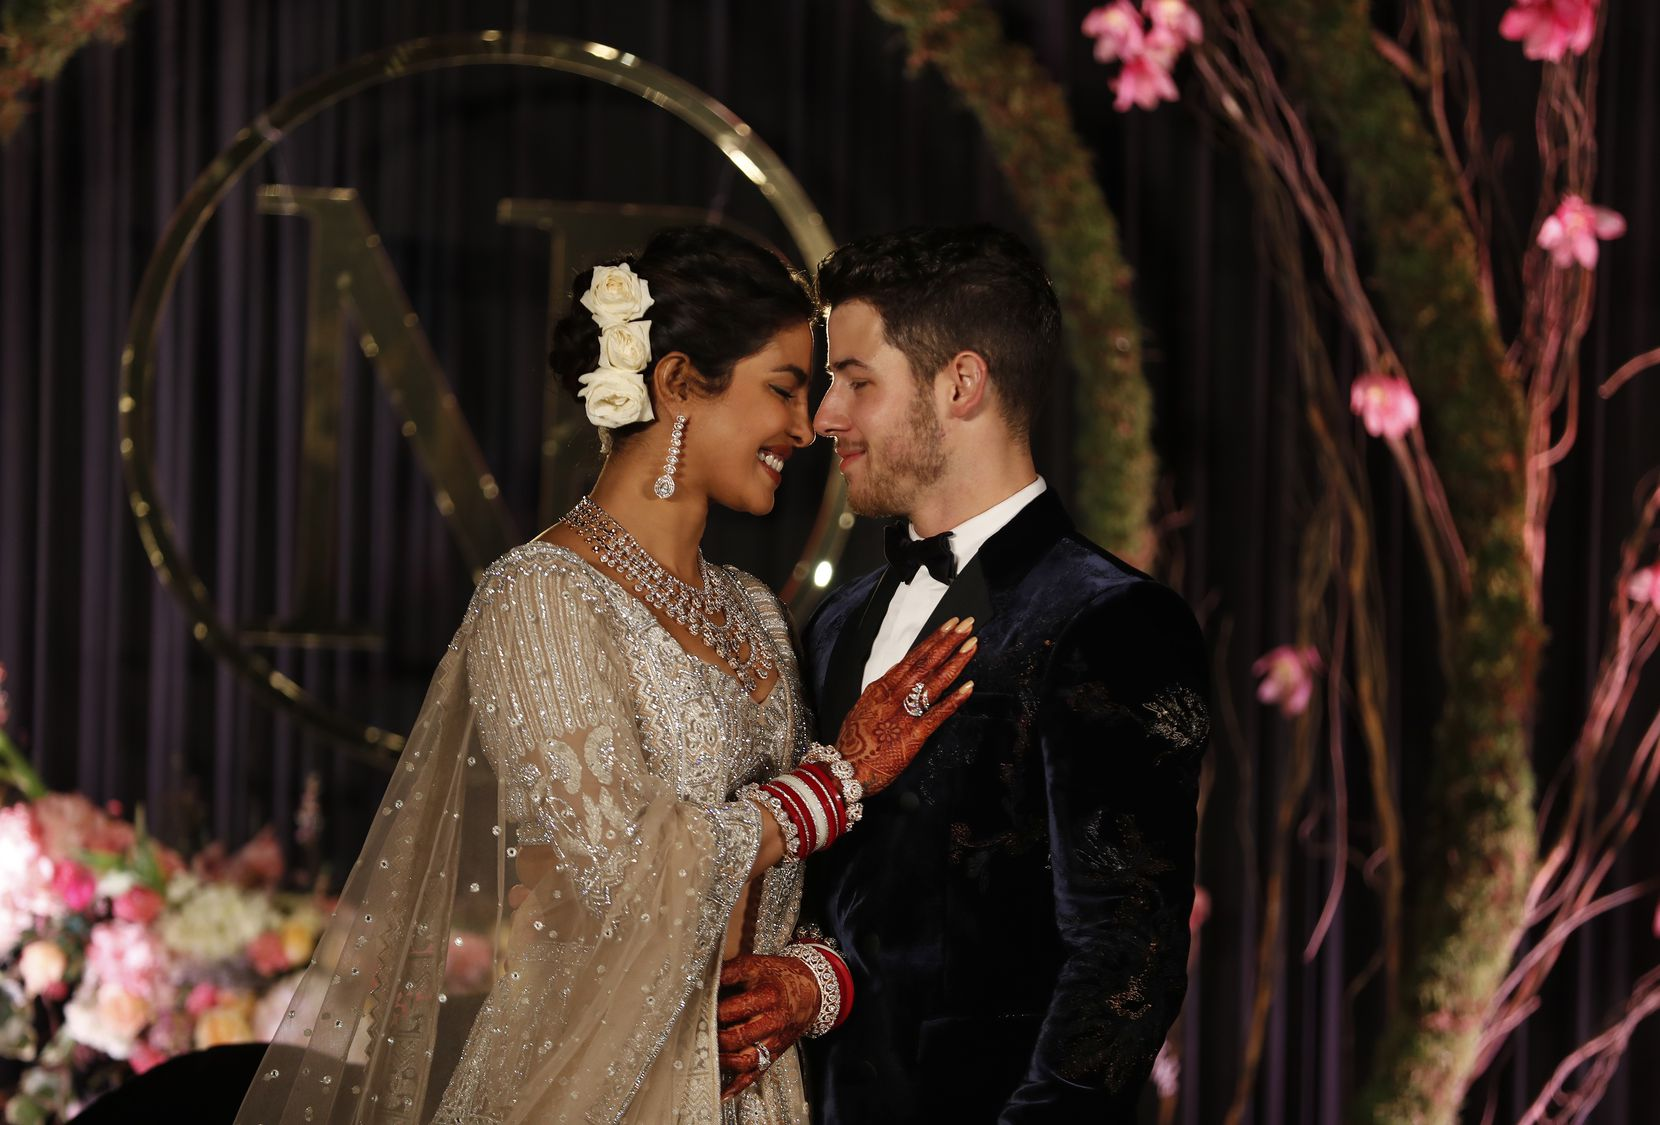 Bollywood actress Priyanka Chopra and musician Nick Jonas stand for photographs at their wedding reception in New Delhi, India, Tuesday, Dec. 4, 2018.